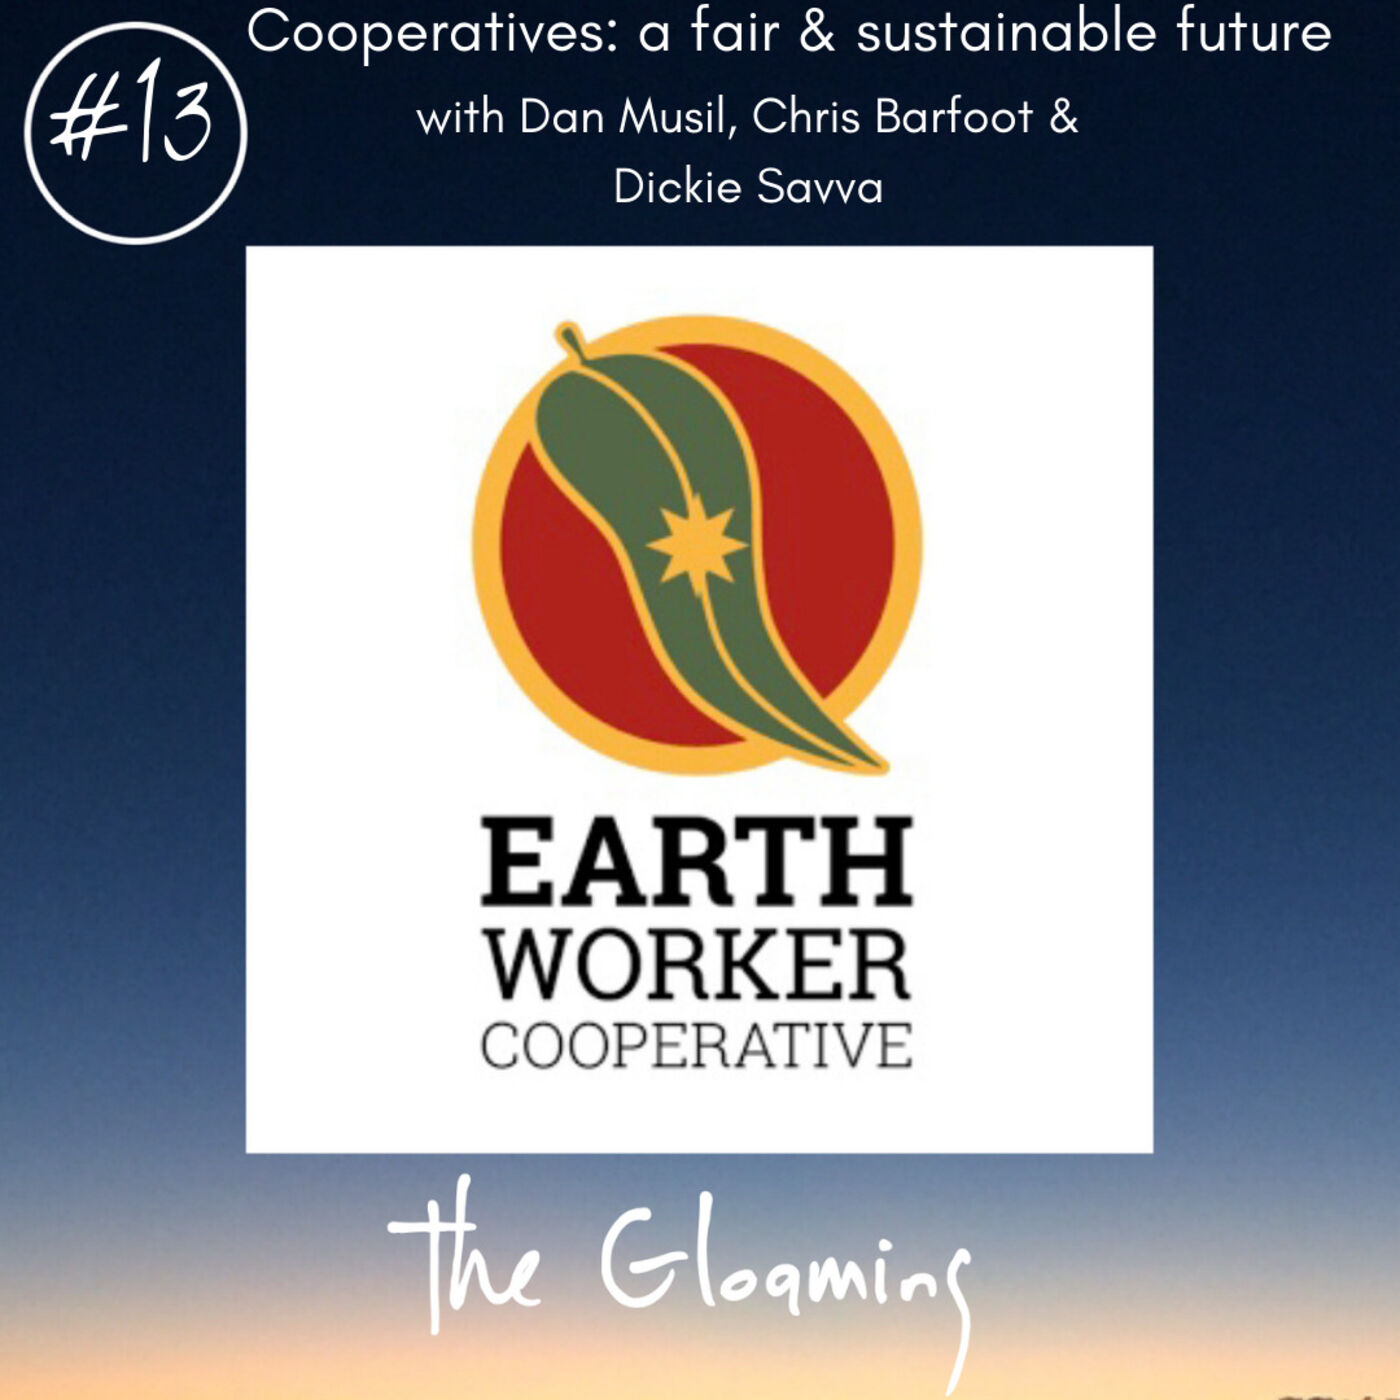 TG13: Cooperatives for a fair & sustainable future (with Dan Musil, Chris Barfoot & Dickie Savva)